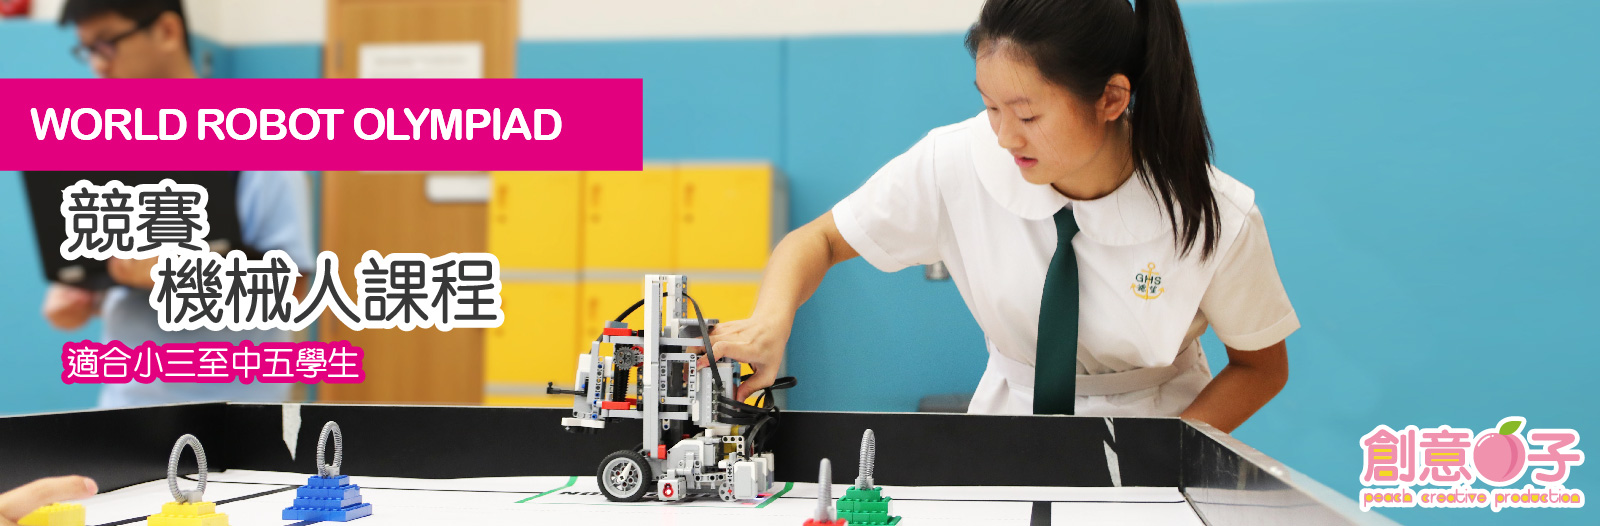 lego_Course_banner_wro_L